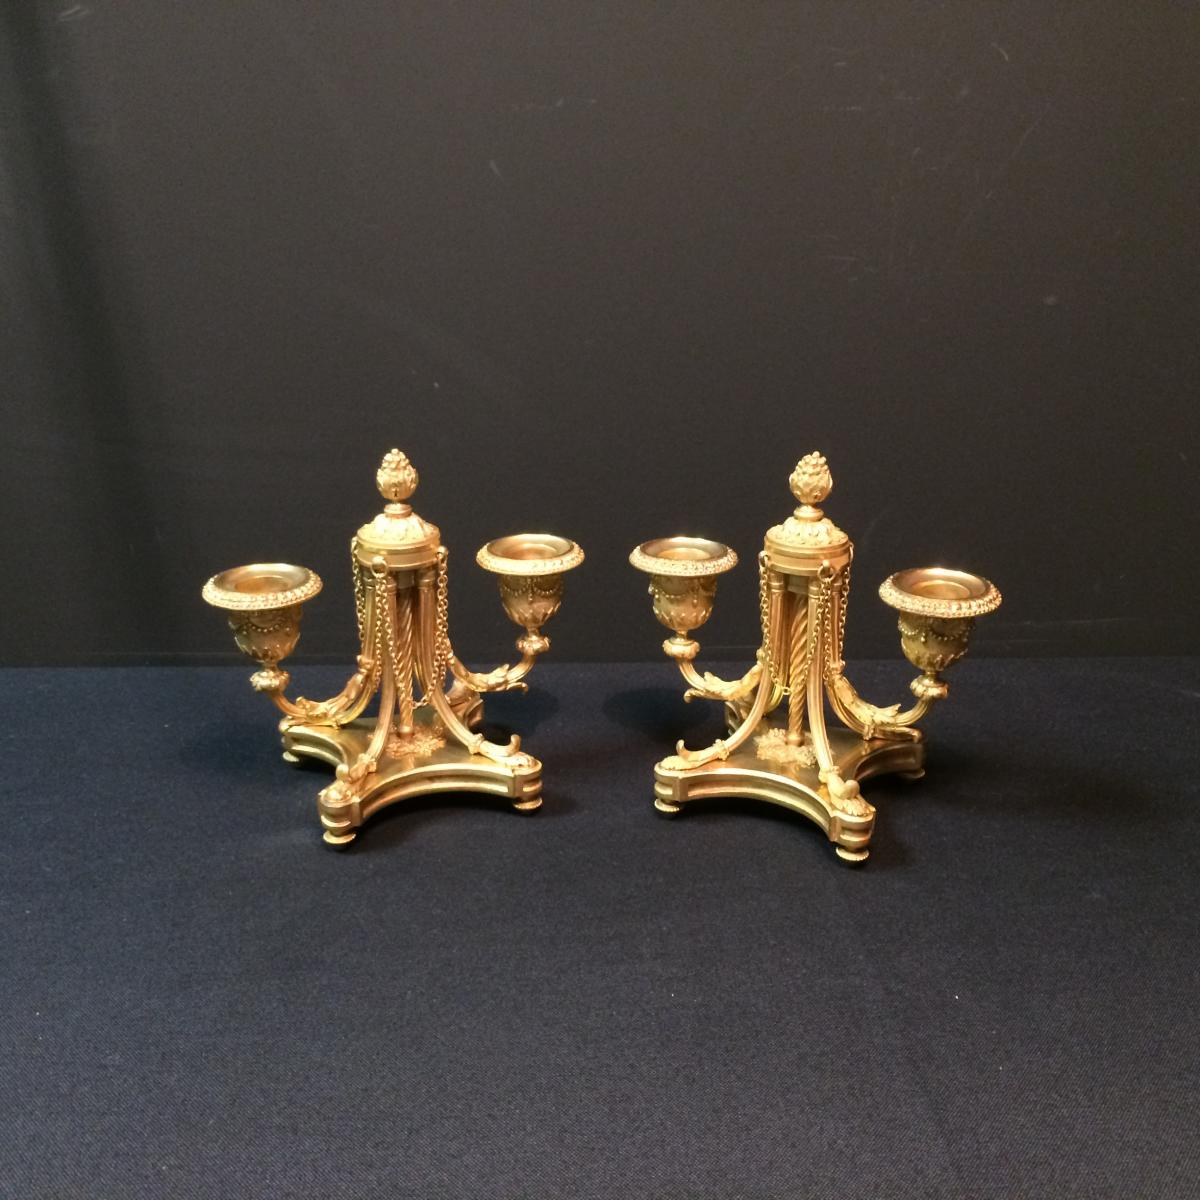 Pair Of Candlesticks With Double Arm Of Light In Gilded Bronze